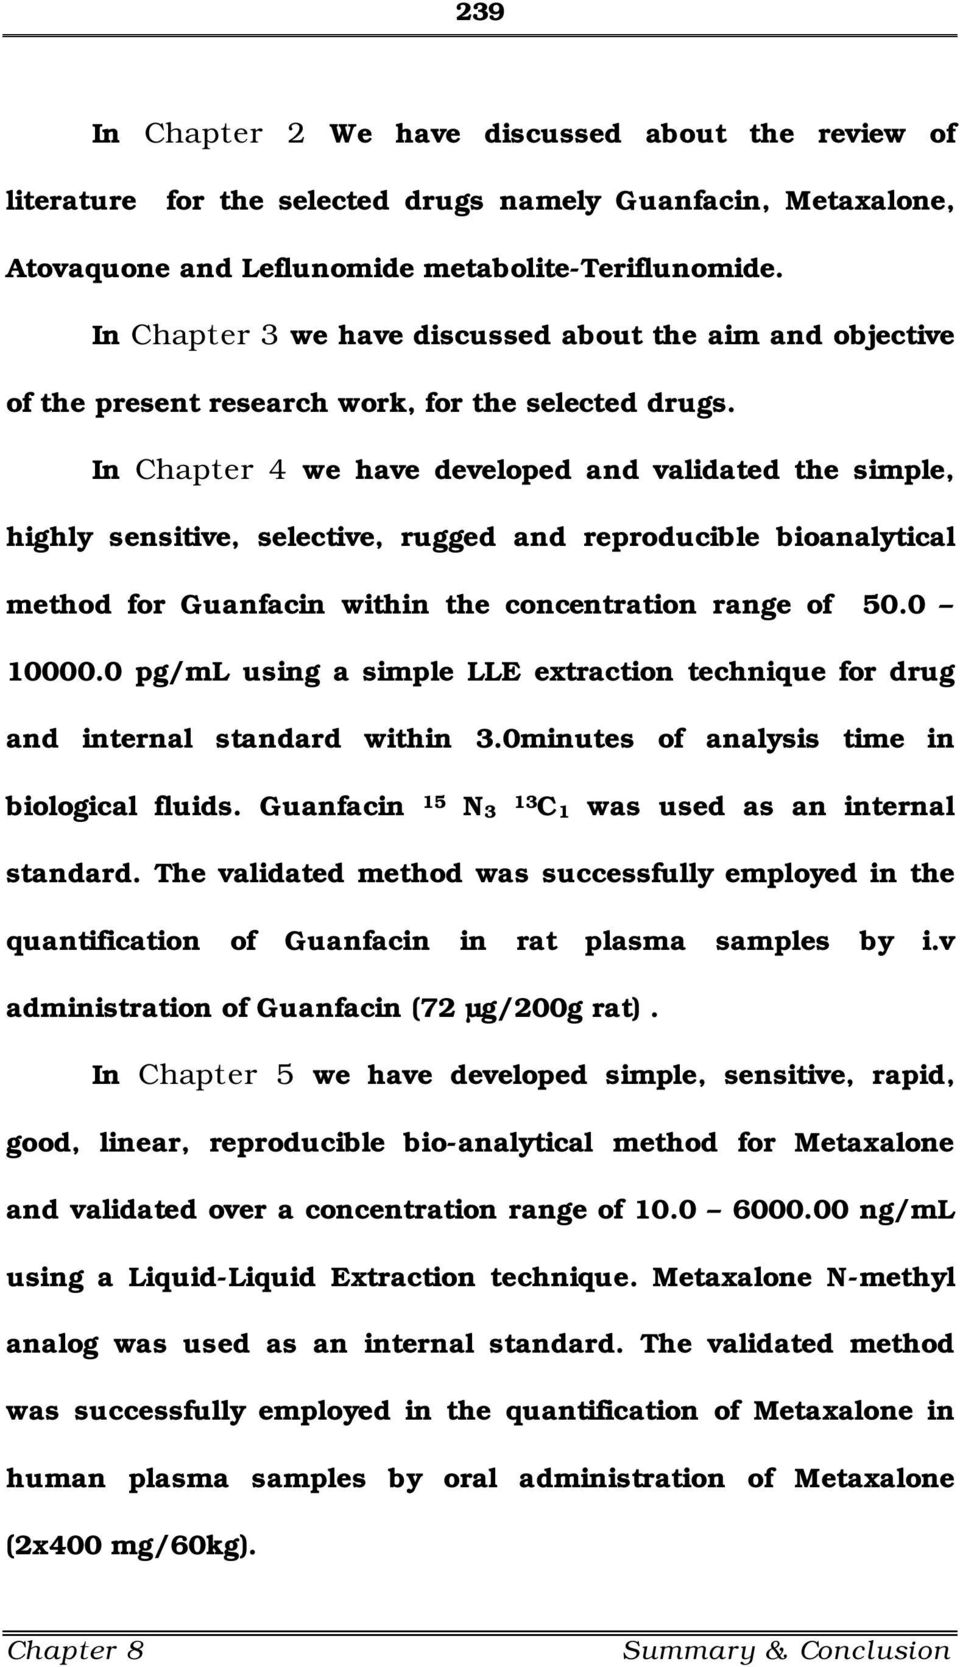 In Chapter 4 we have developed and validated the simple, highly sensitive, selective, rugged and reproducible bioanalytical method for Guanfacin within the concentration range of 50.0 10000.